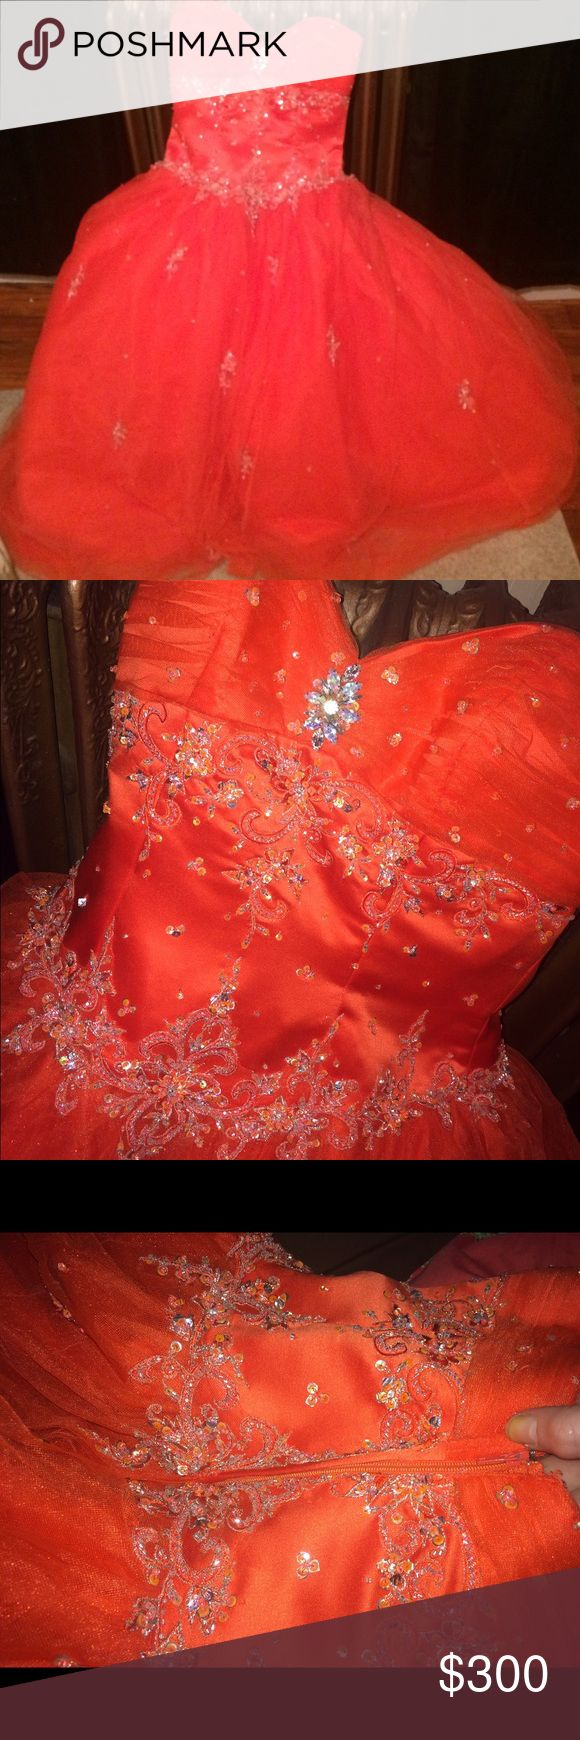 Orange formal dress✨ Prom dress or whatever you'd like, good condition. Only worn once. Best offer!! ✨ Dresses Prom